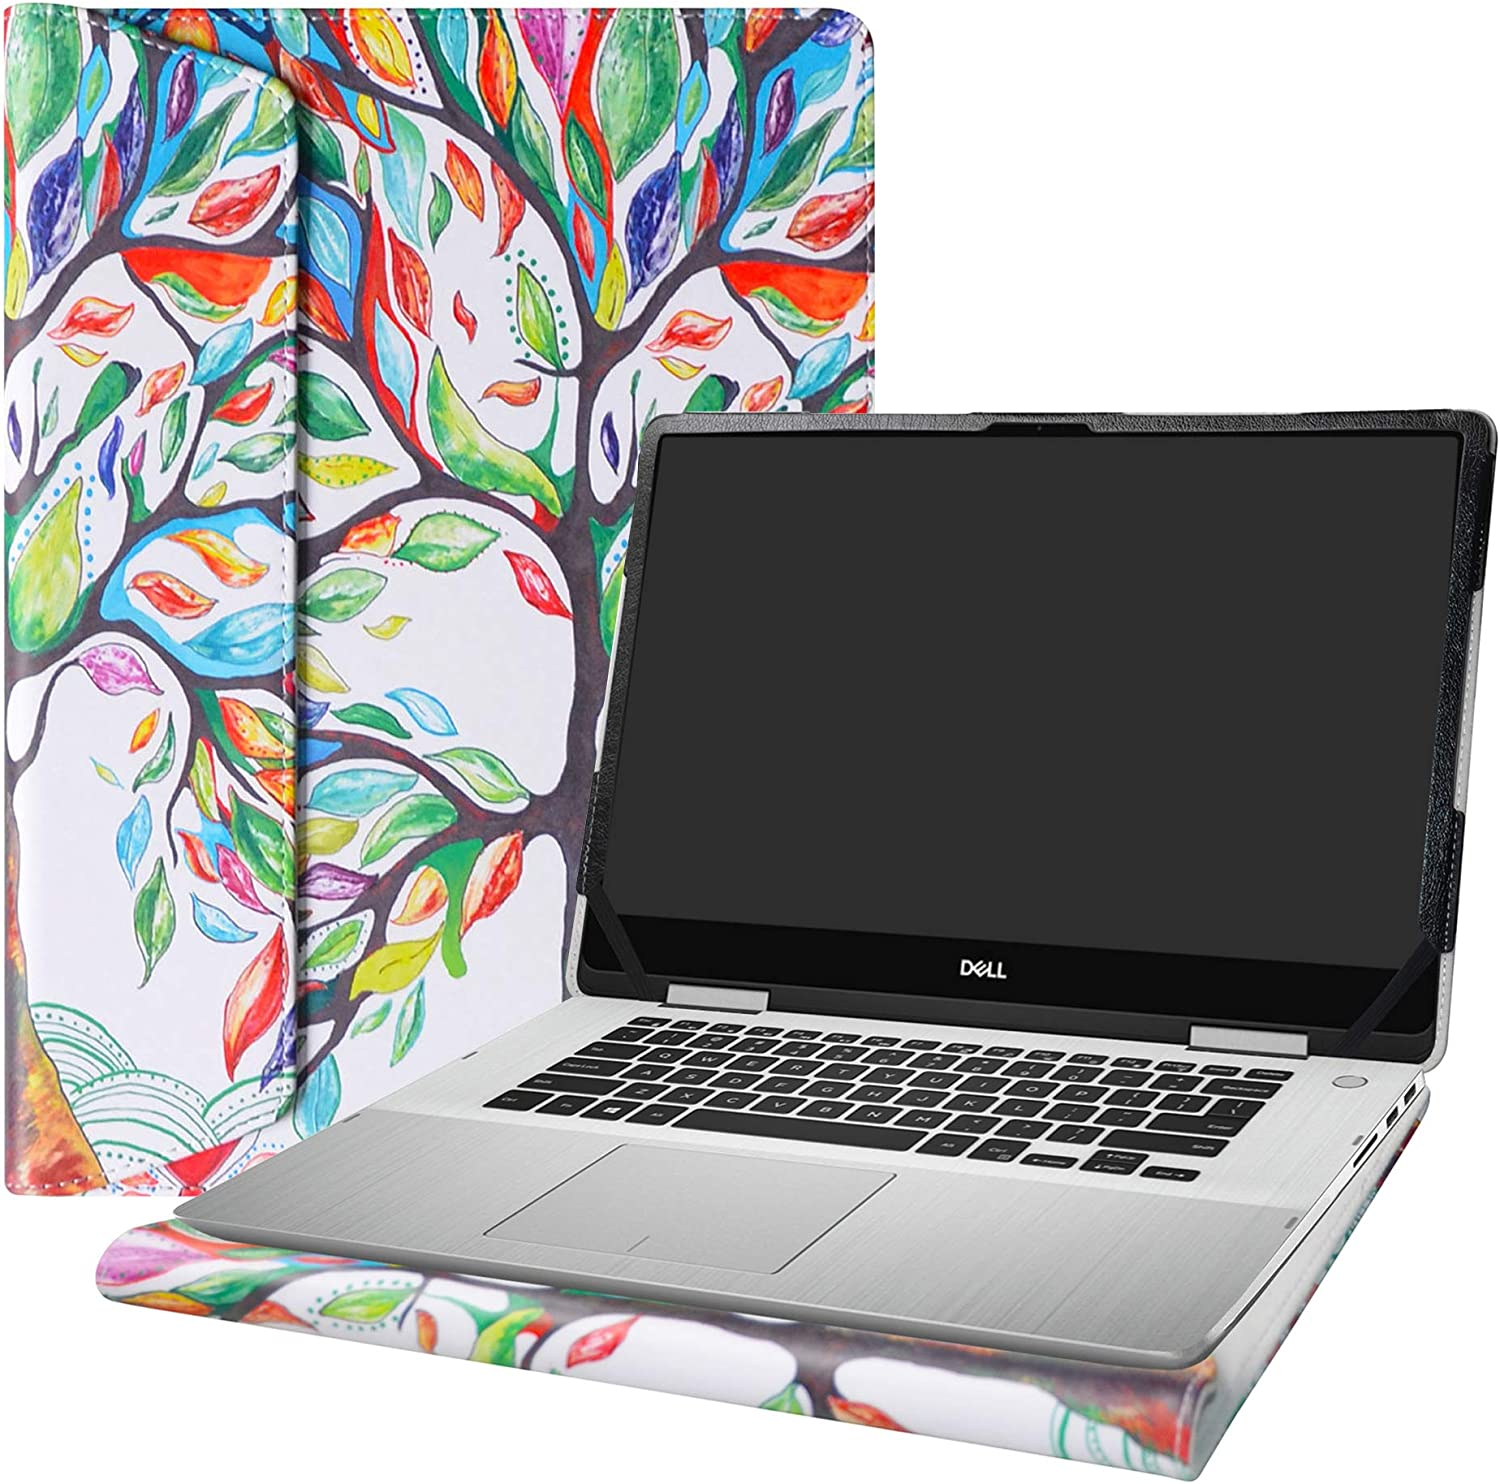 """Alapmk Protective Case Cover for 15.6"""" Dell inspiron 15 2-in-1 7586 i7586 & Acer Aspire 7 15 A715-73G Laptop[Note:Not fit inspiron 15 7580/Aspire 7 A715-74G A715-71G A715-72G],Love Tree"""